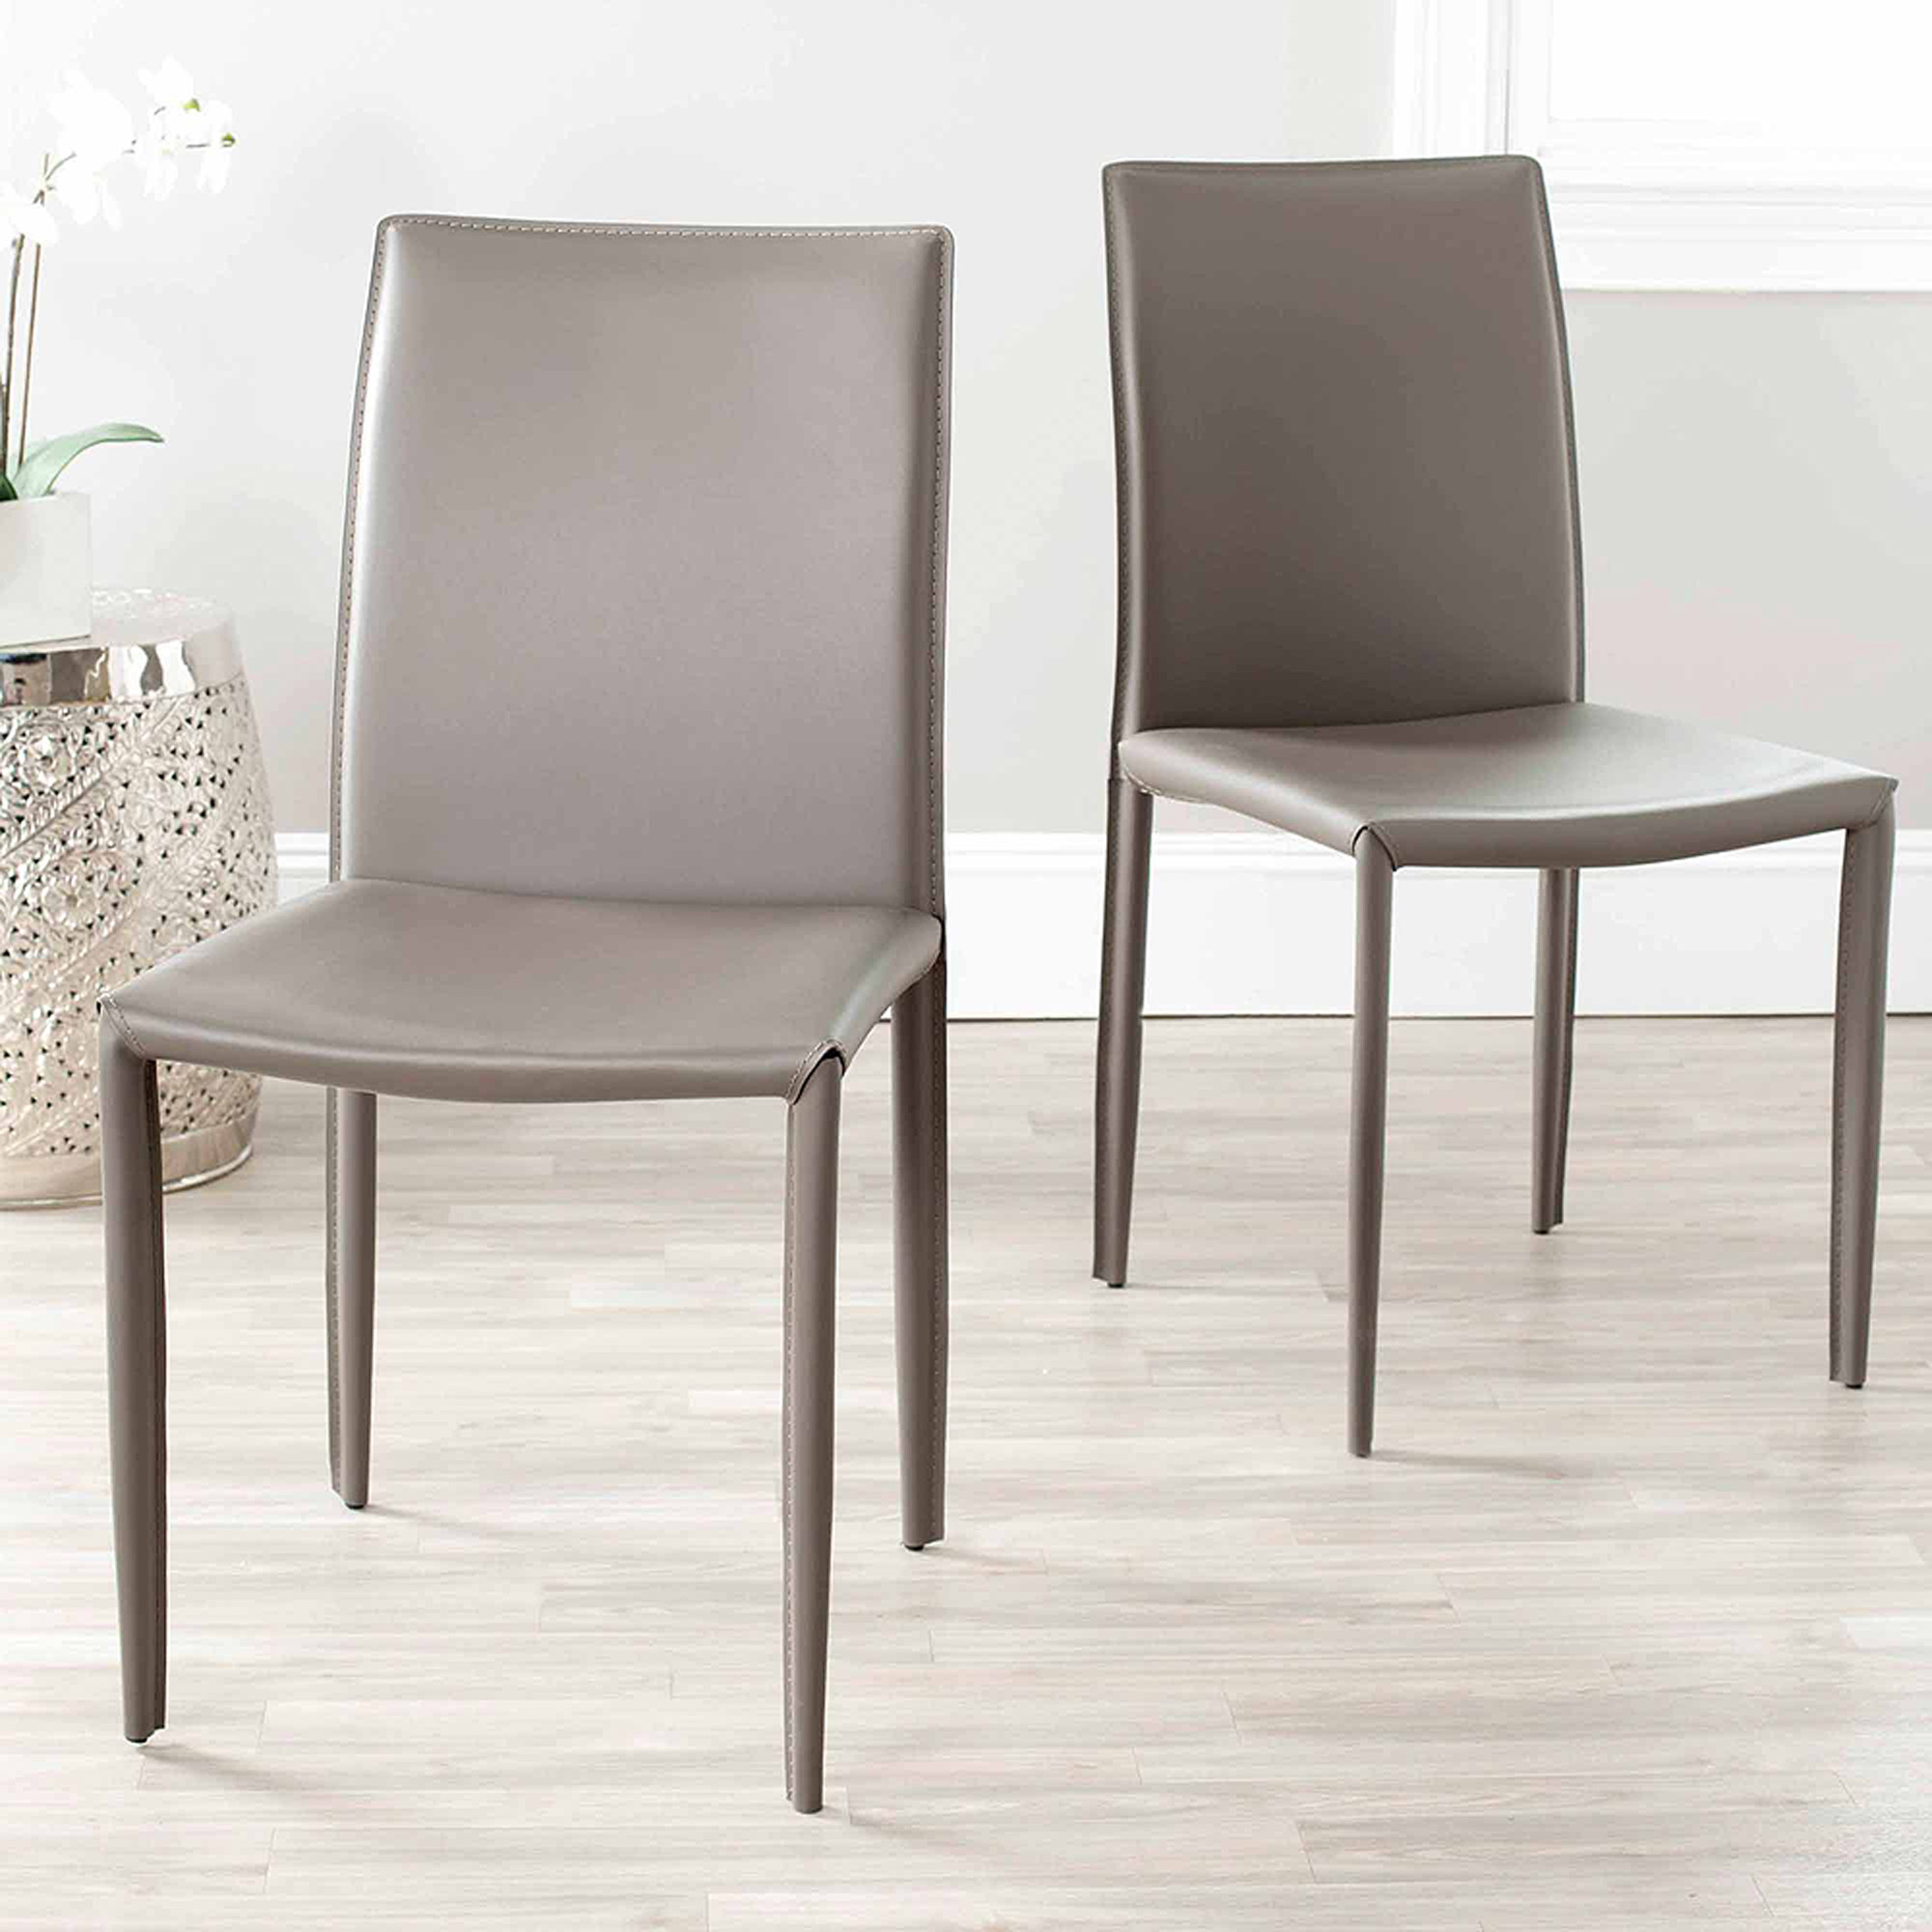 Safavieh Karna Dining Chair, Set of 2 - Walmart.com